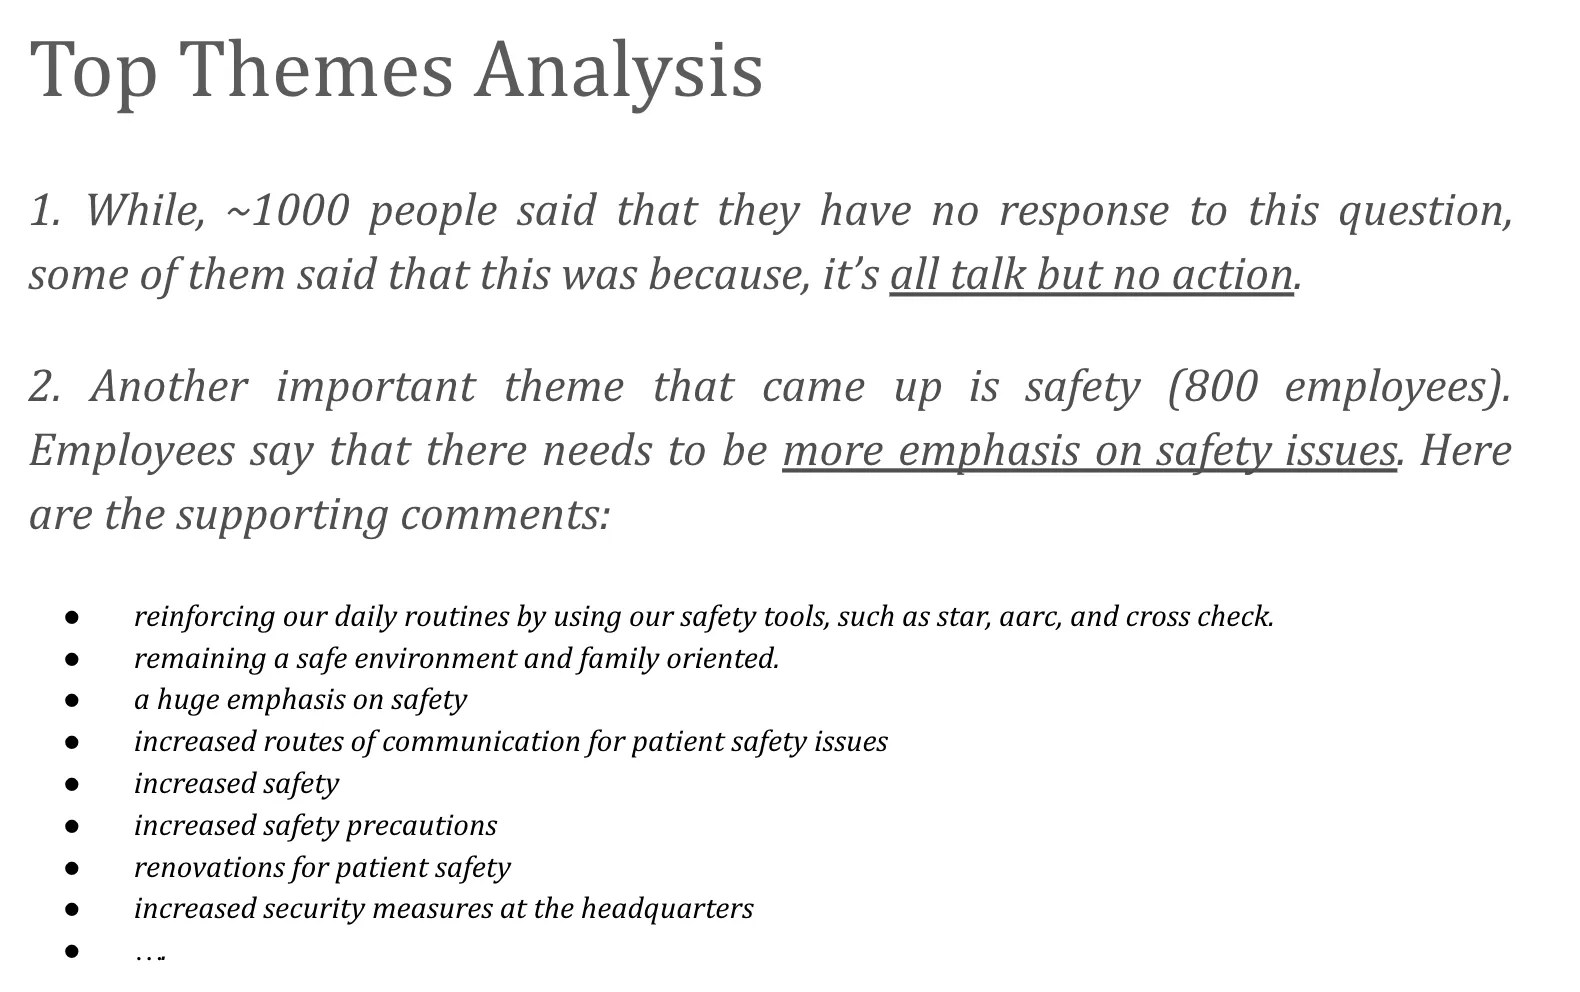 Expert analysis of the top themes from employee engagement survey